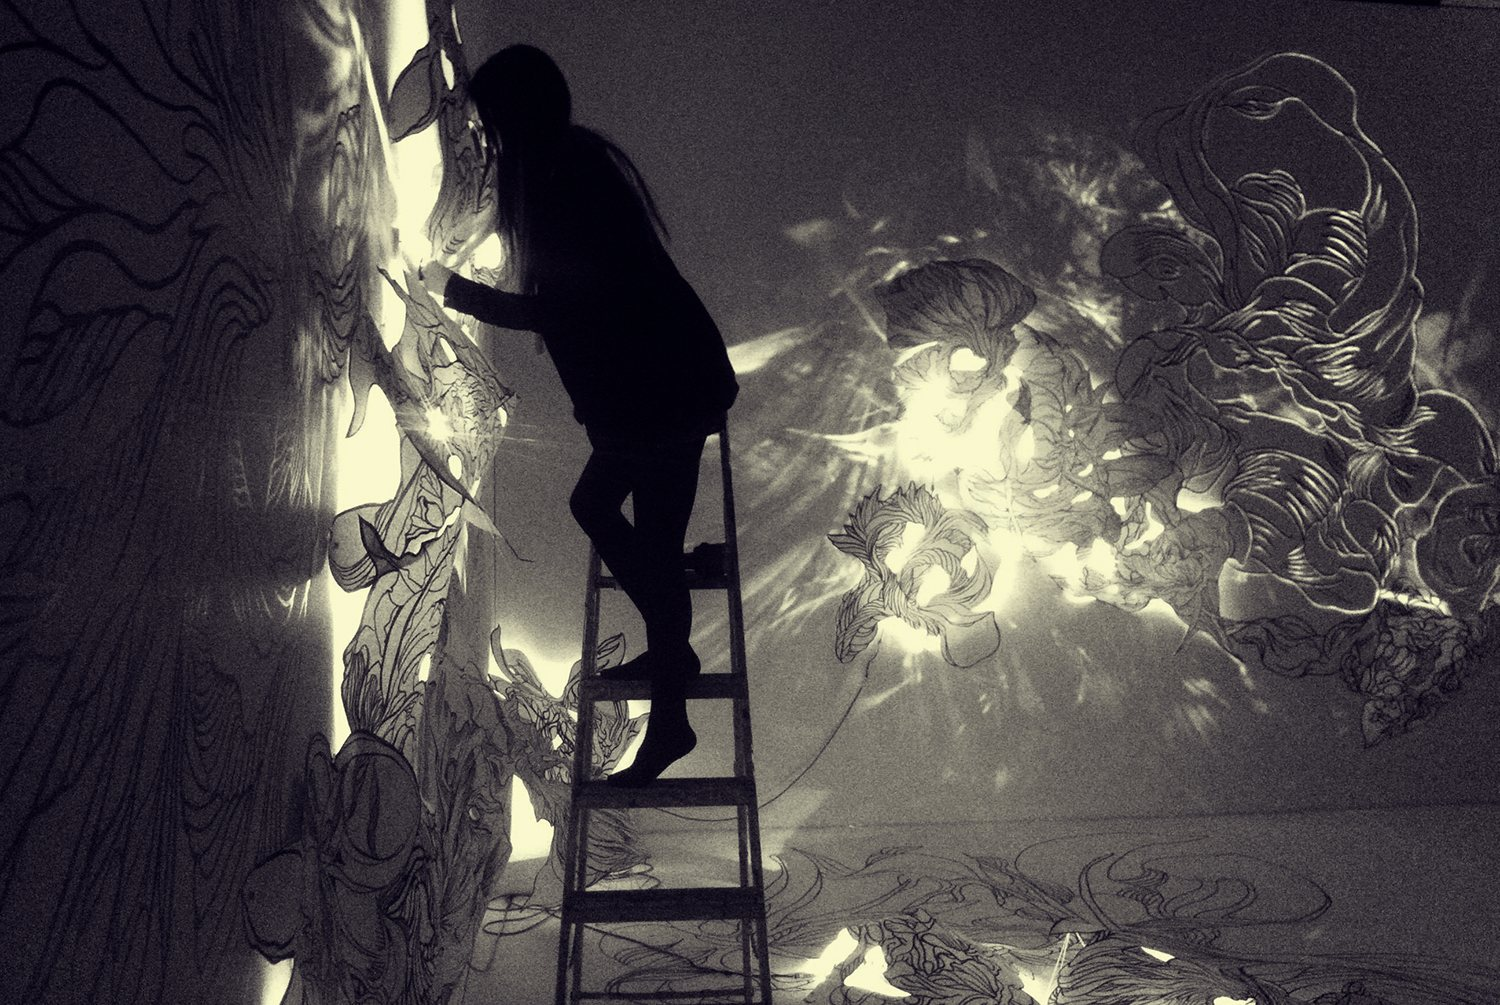 Sougwen Chung S Chiaroscuro Installation Breathes With